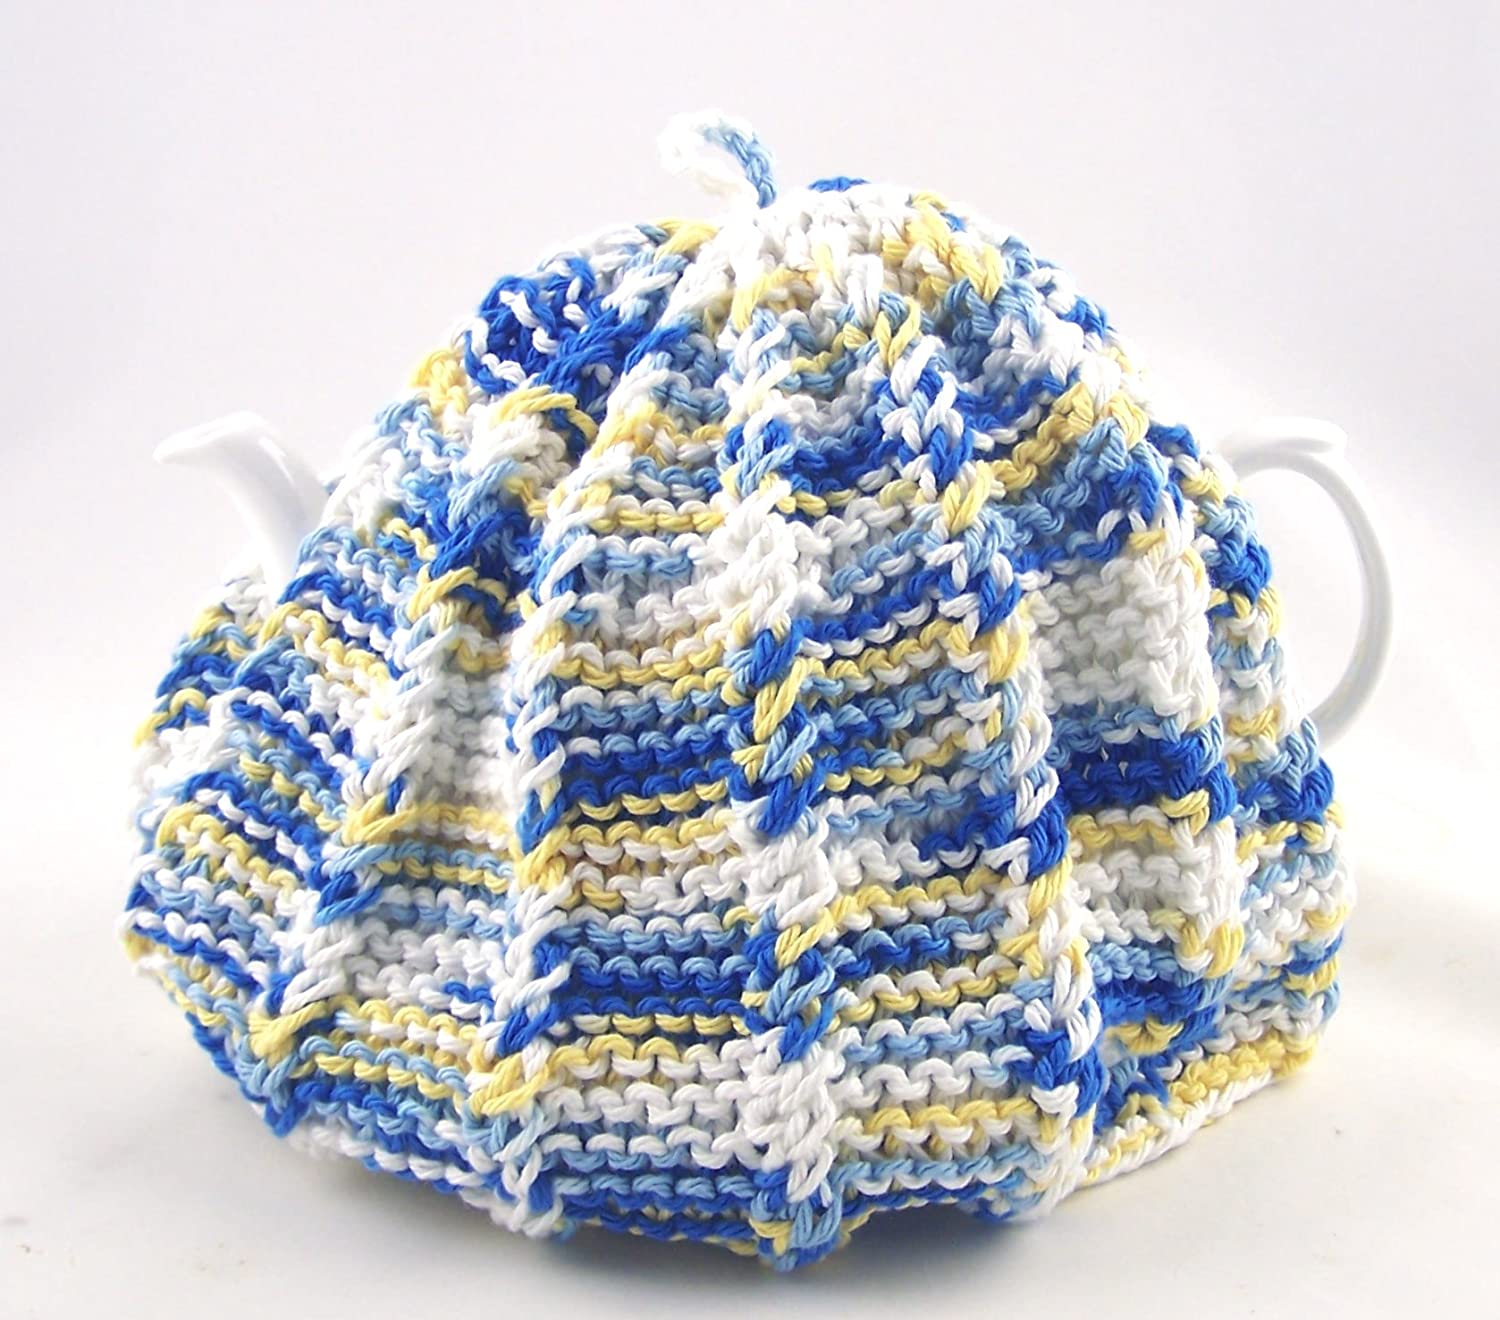 Knit Tea Cozy Cosy Handmade Washable Country Kitchen Colors - Blue and Yellow ChinaFind